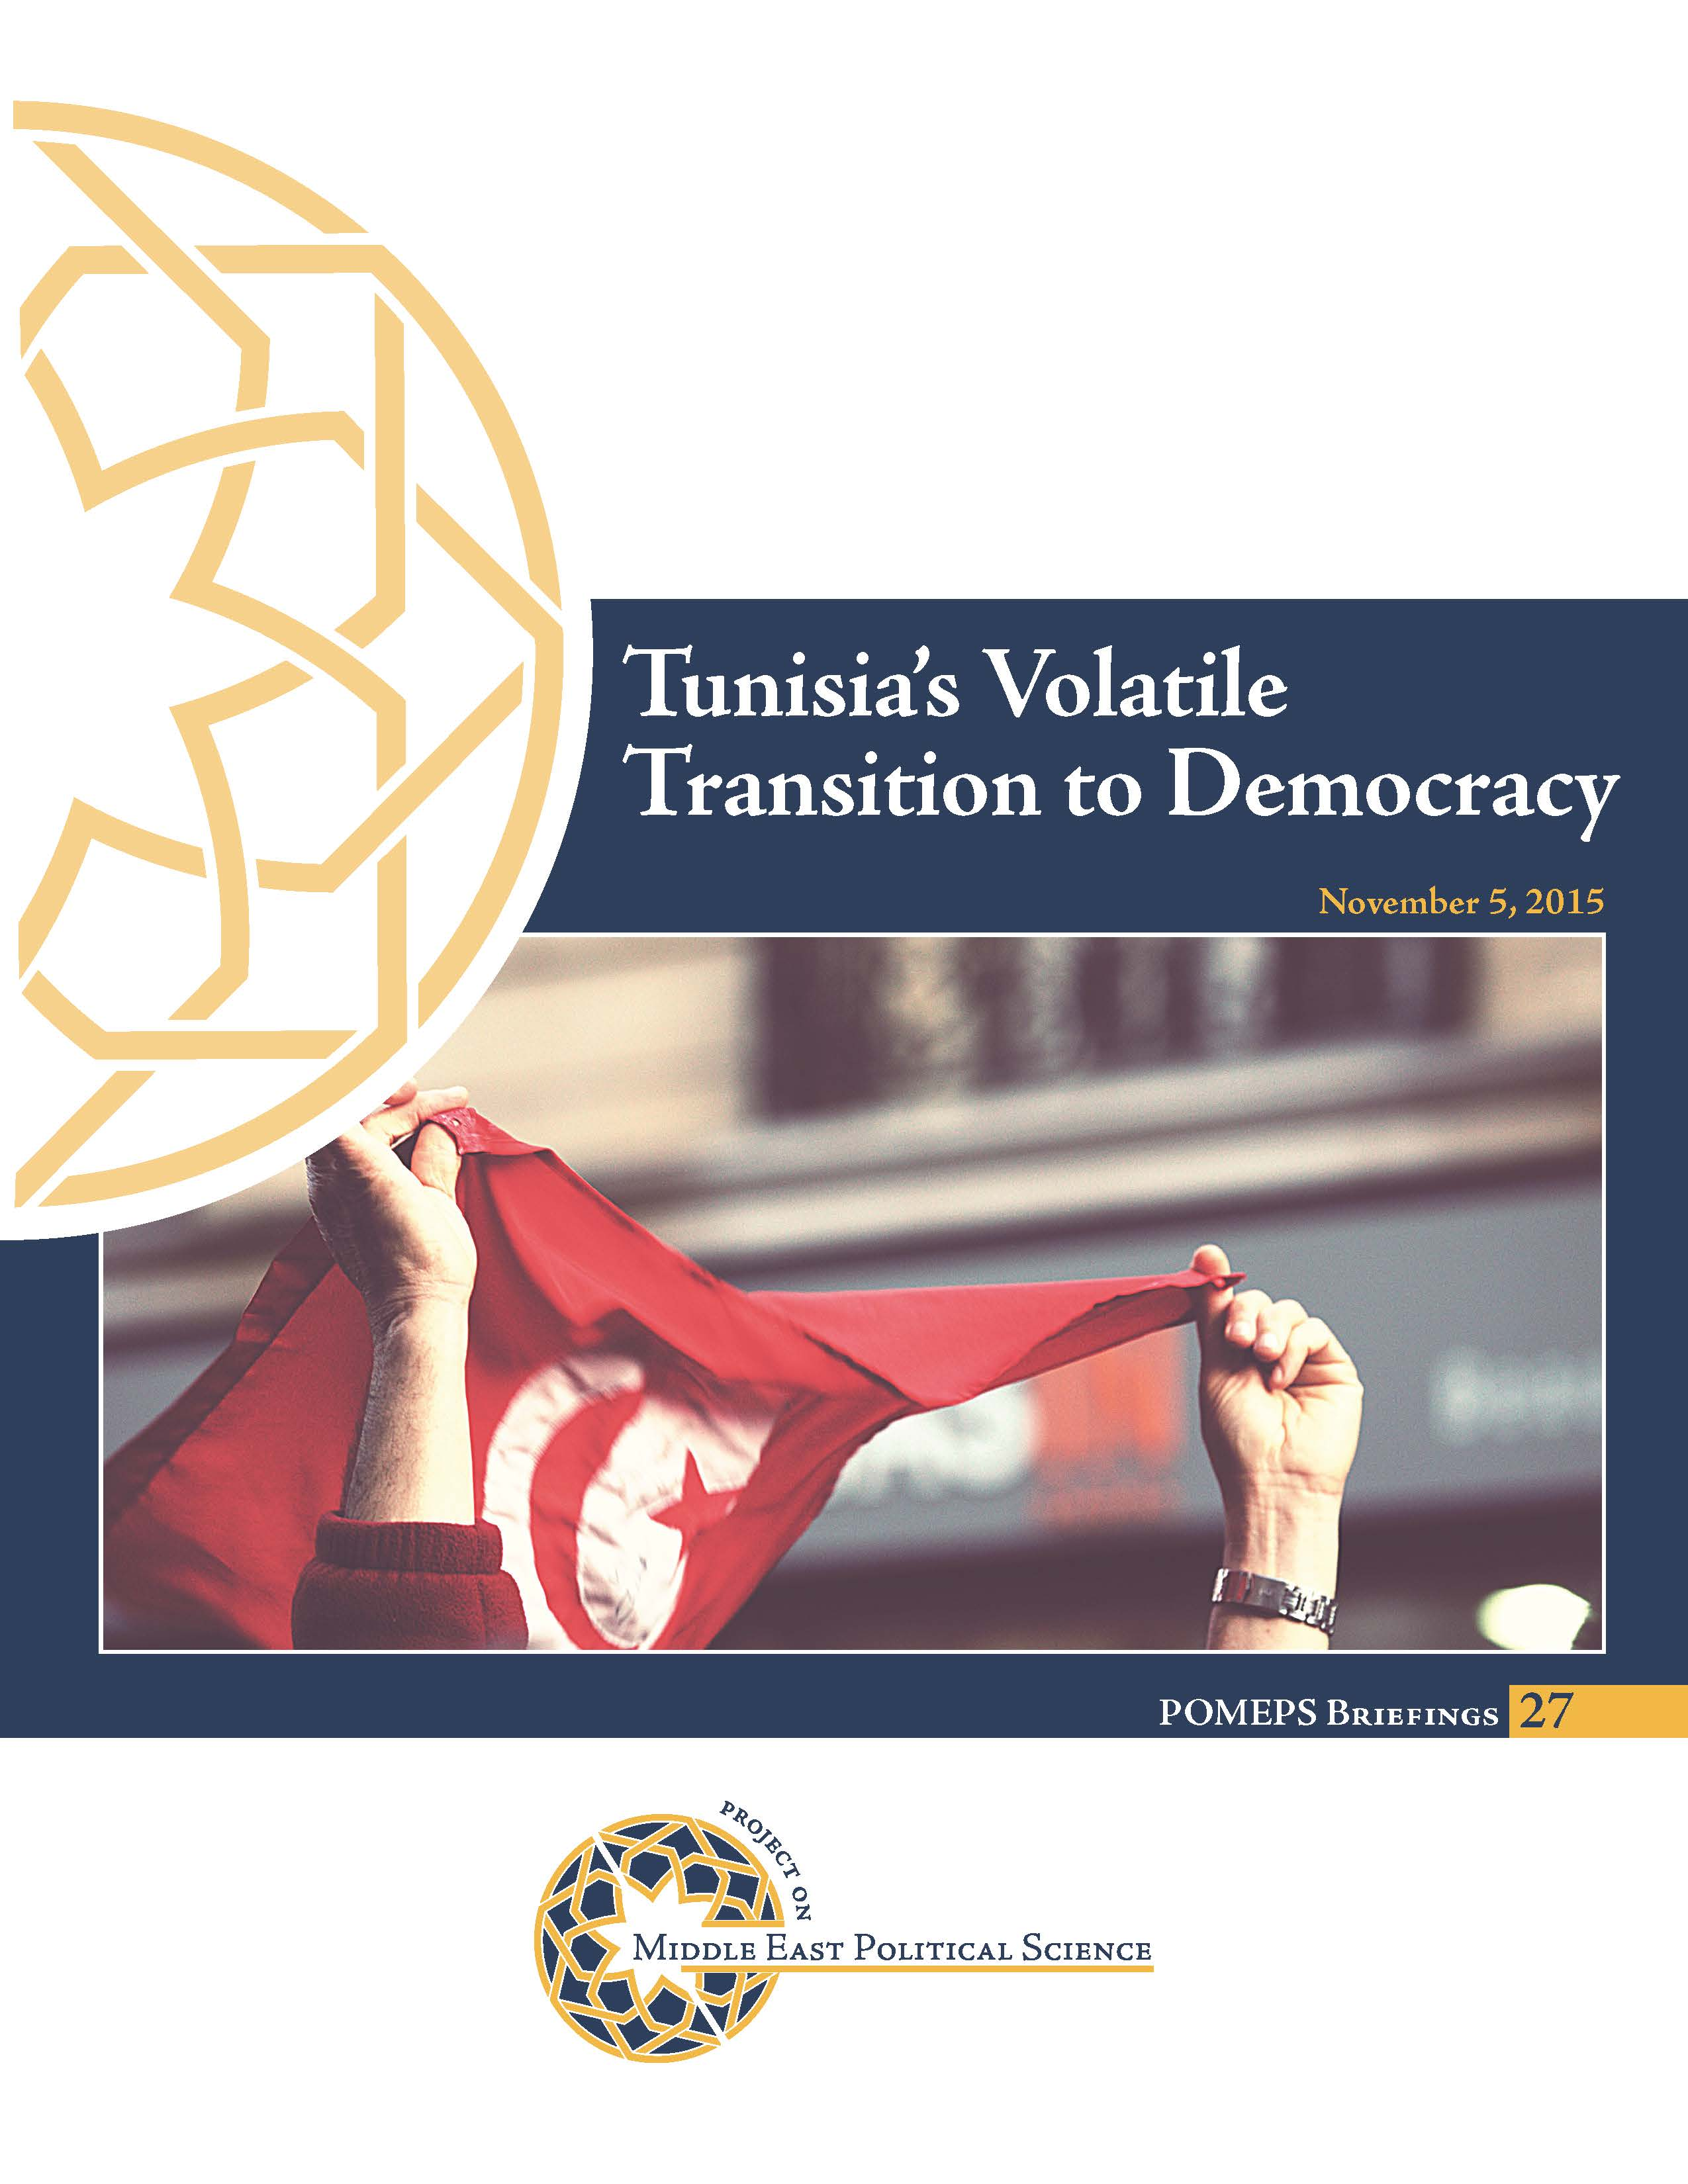 Tunisia's Volatile Transition to Democracy